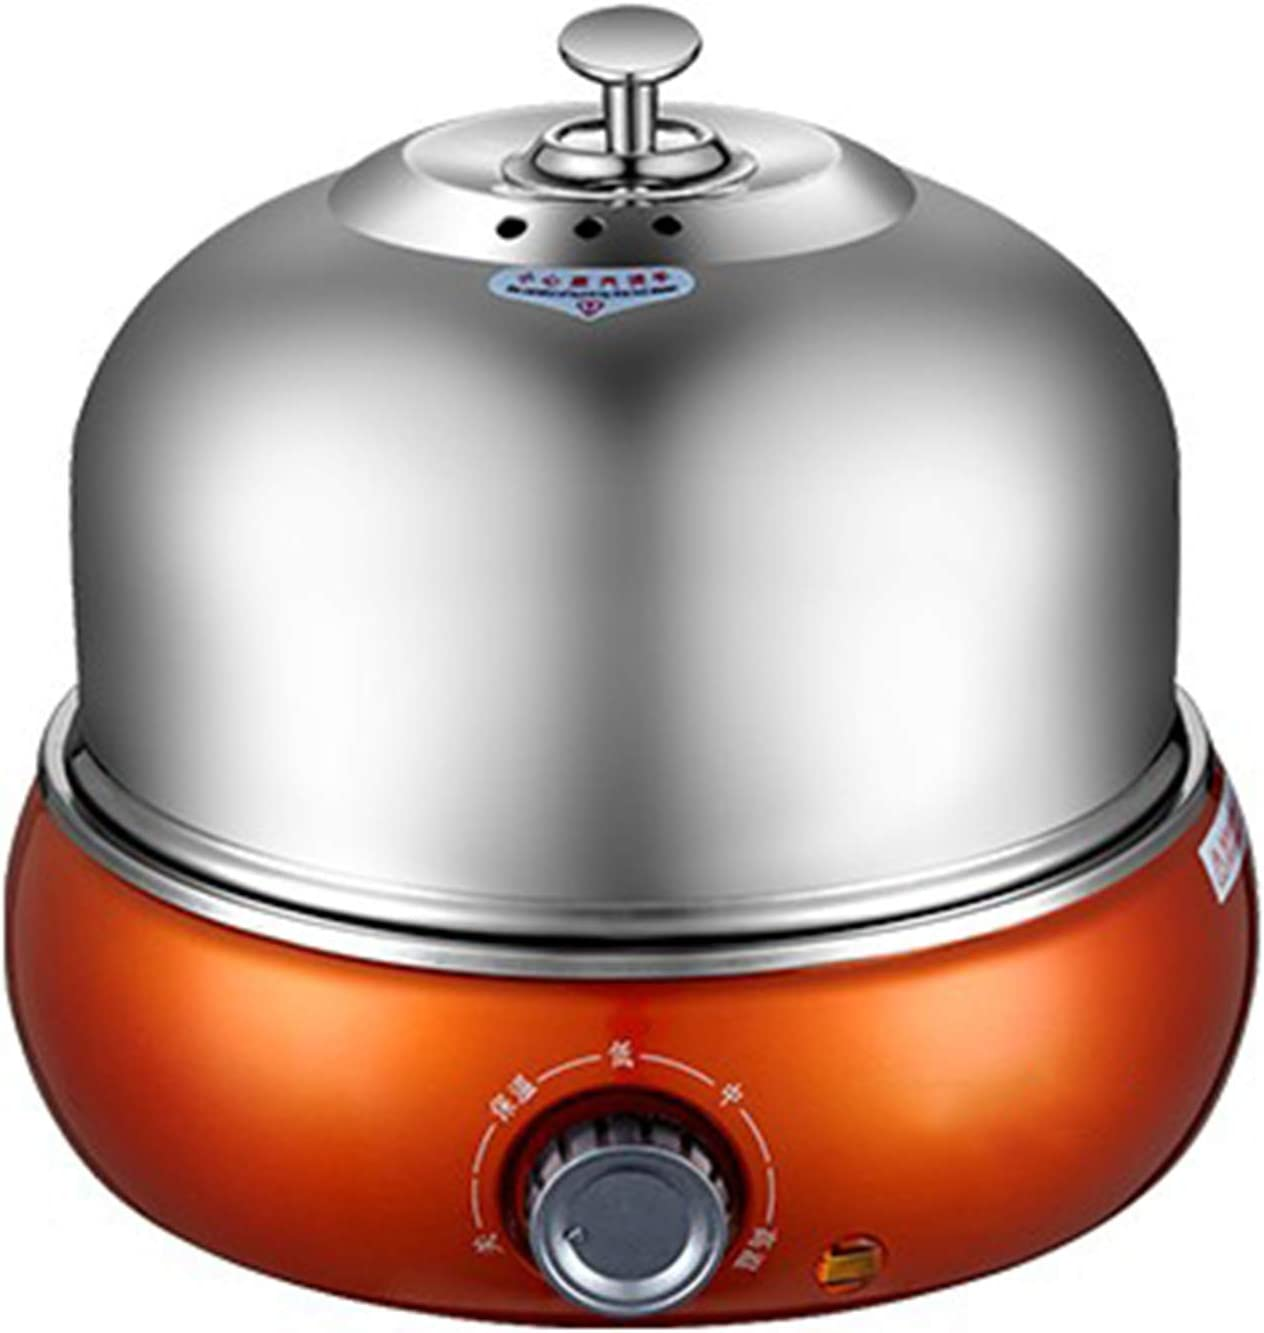 XIONGGG Egg Cooker, Electric Egg Boiler, 9 Egg Capacity, Stainless Steel with Auto Shut Off, for Soft, Medium, Hard Boiled Eggs